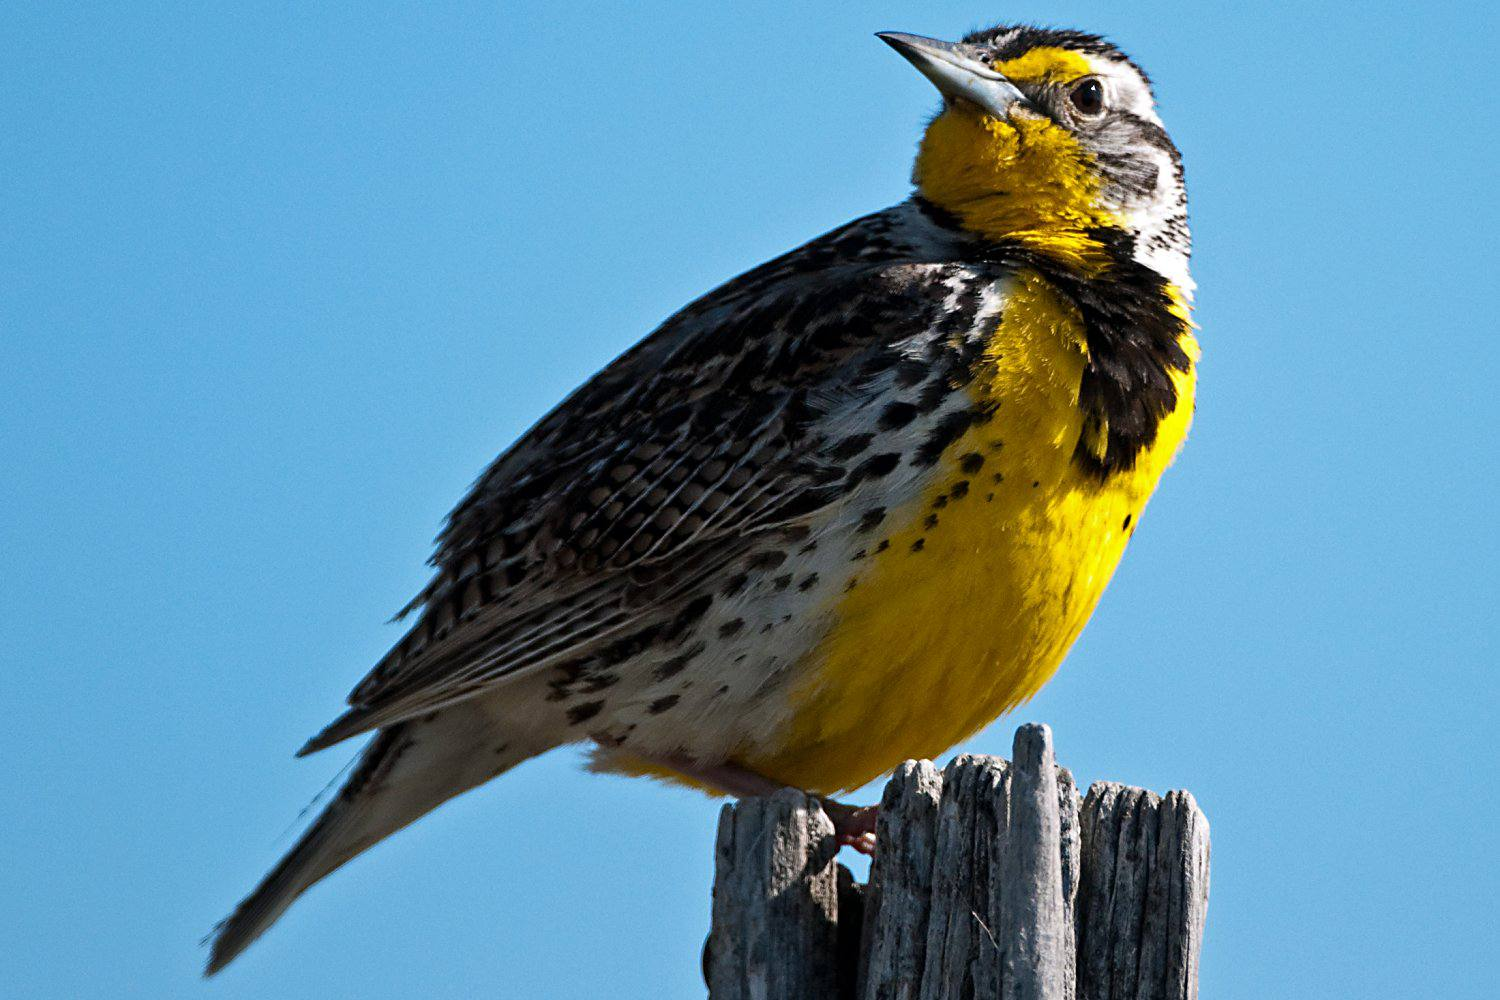 Western Meadowlark, state bird of Kansas, on a fence post top.